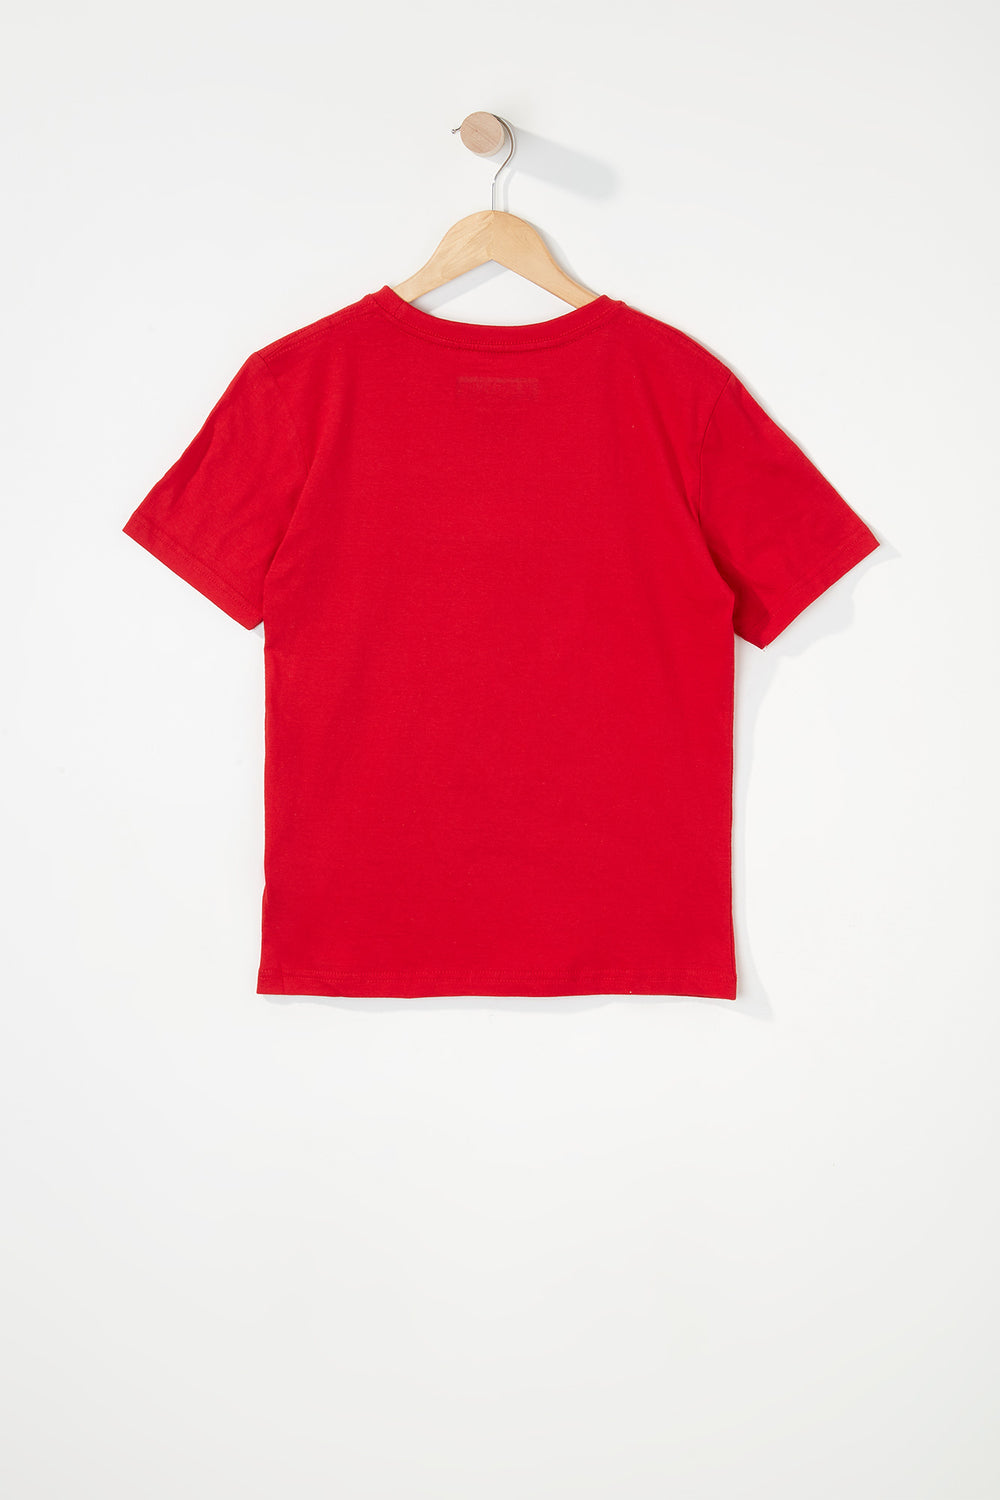 Zoo York Boys Patch Logo T-Shirt Red